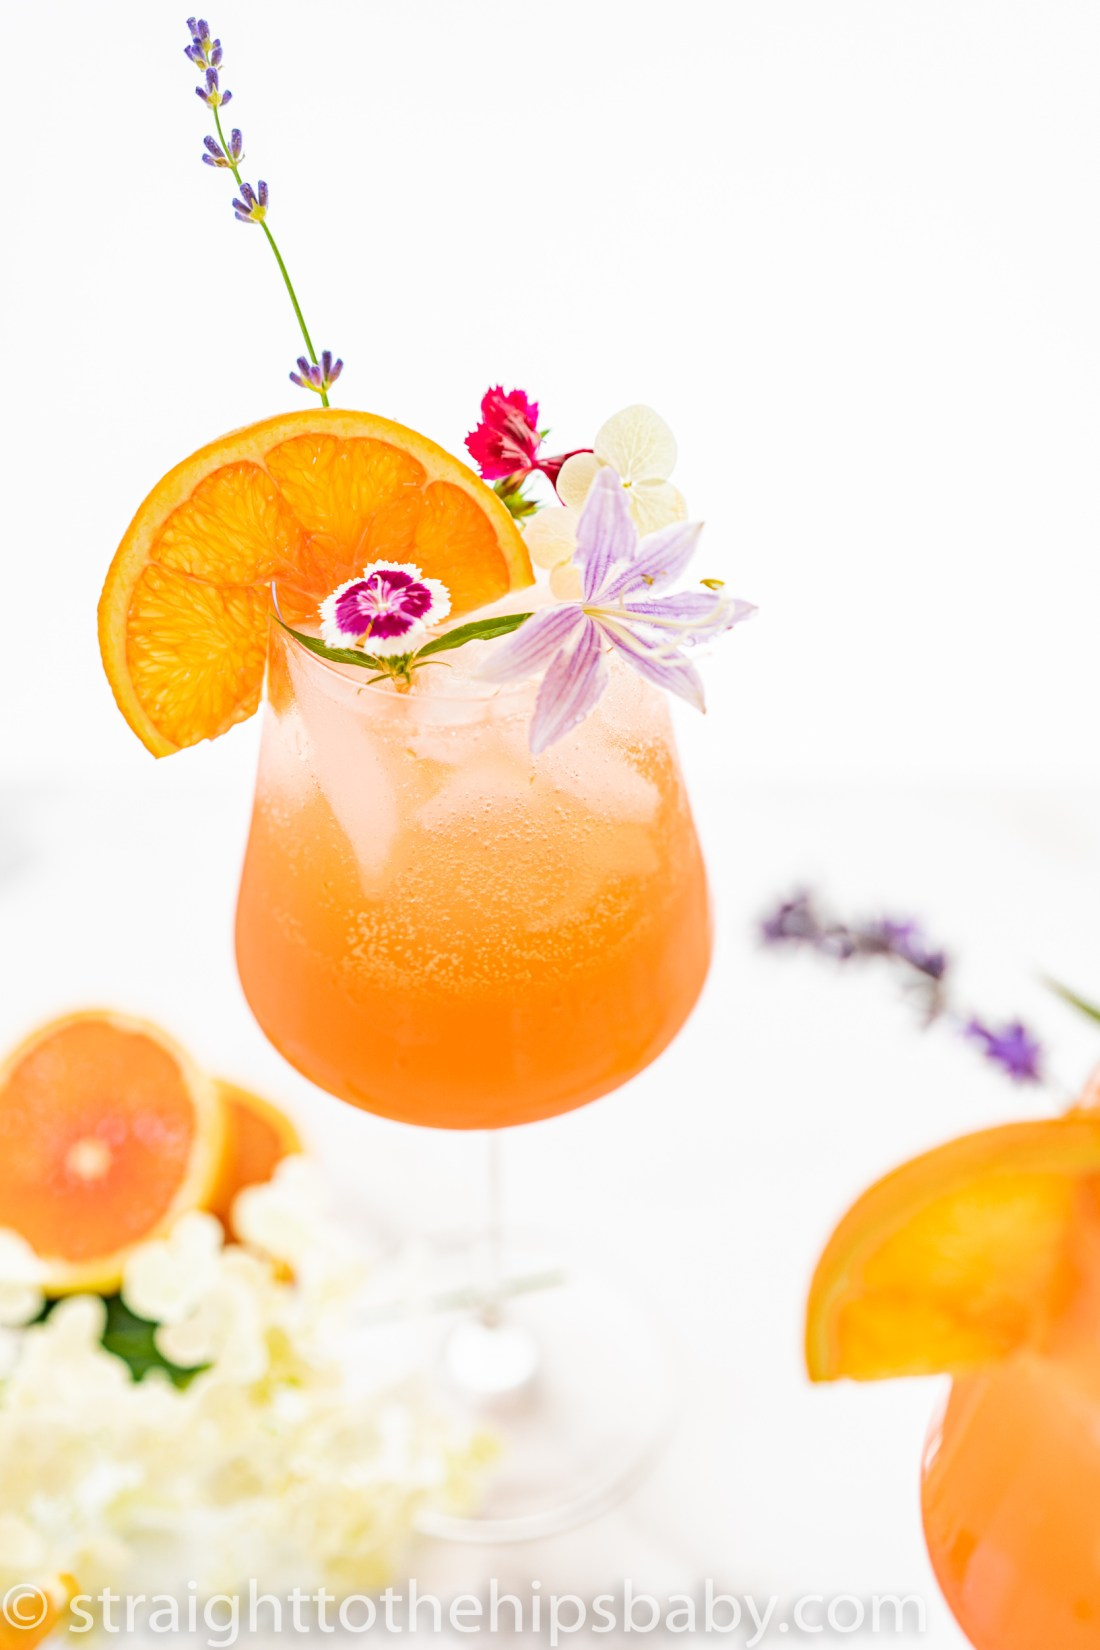 An icy cold finished grapefruit Aperol Spritz with an orange slice and lavender flower garnish